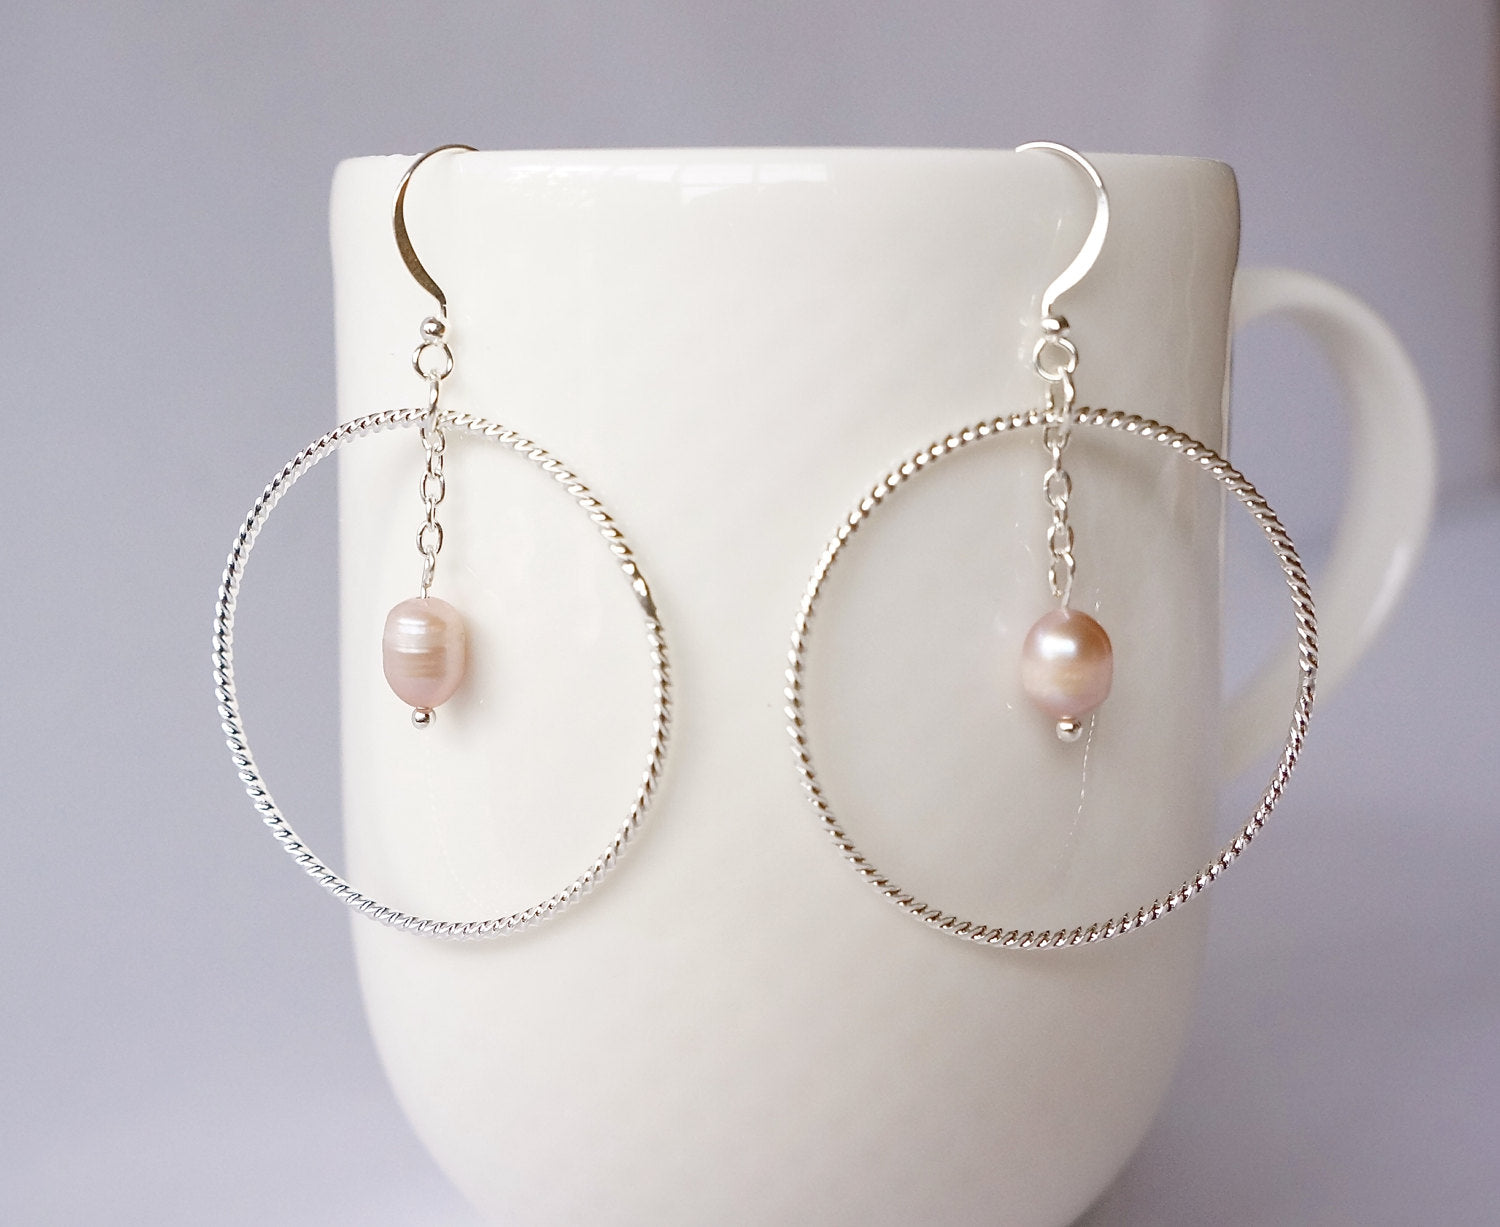 FRESHWATER PEARL EARRINGS, Boho Chic Jewelry, Birthday Gifts For Girls, Big Hoop Earrings, Large Circle Earrings, Large Hoops, Endless Hoop